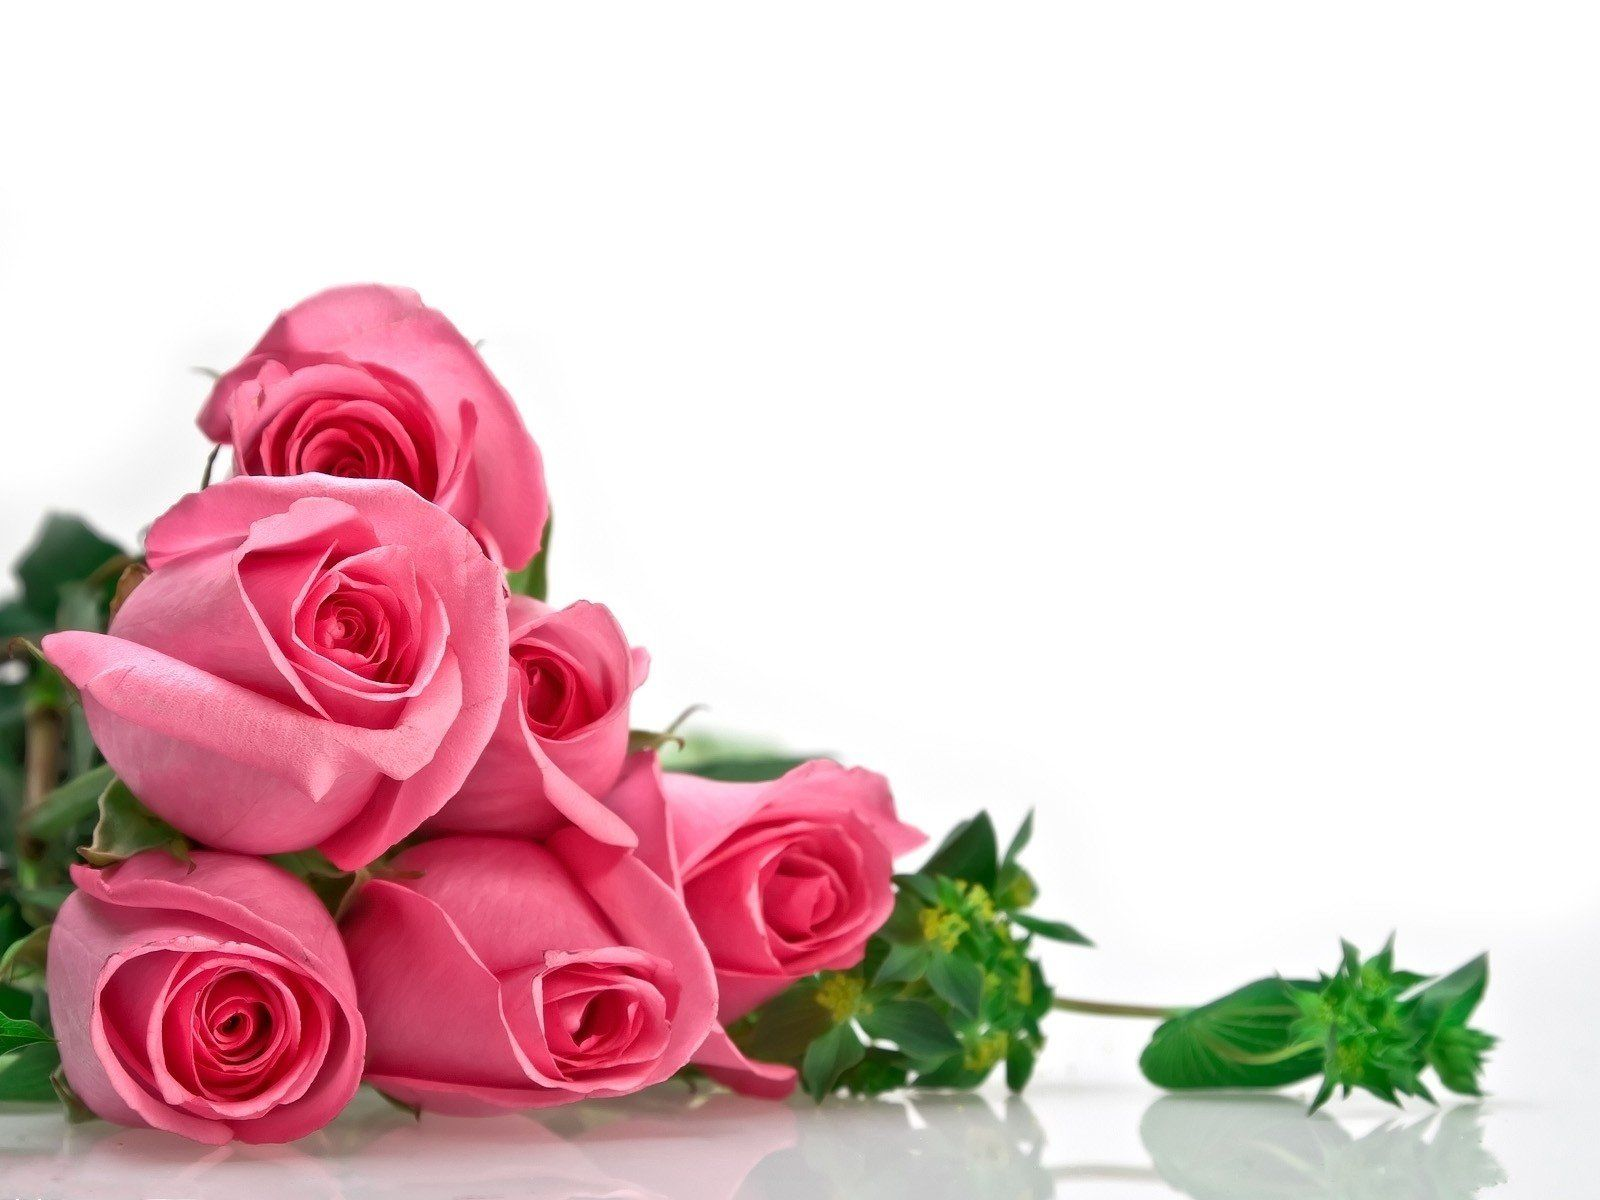 Download Hd Wallpapers Of 292297 Flowers Roses Free Download High Quality And Widescreen Resolutions In 2020 Rose Flower Wallpaper Pink Rose Bouquet Flower Wallpaper